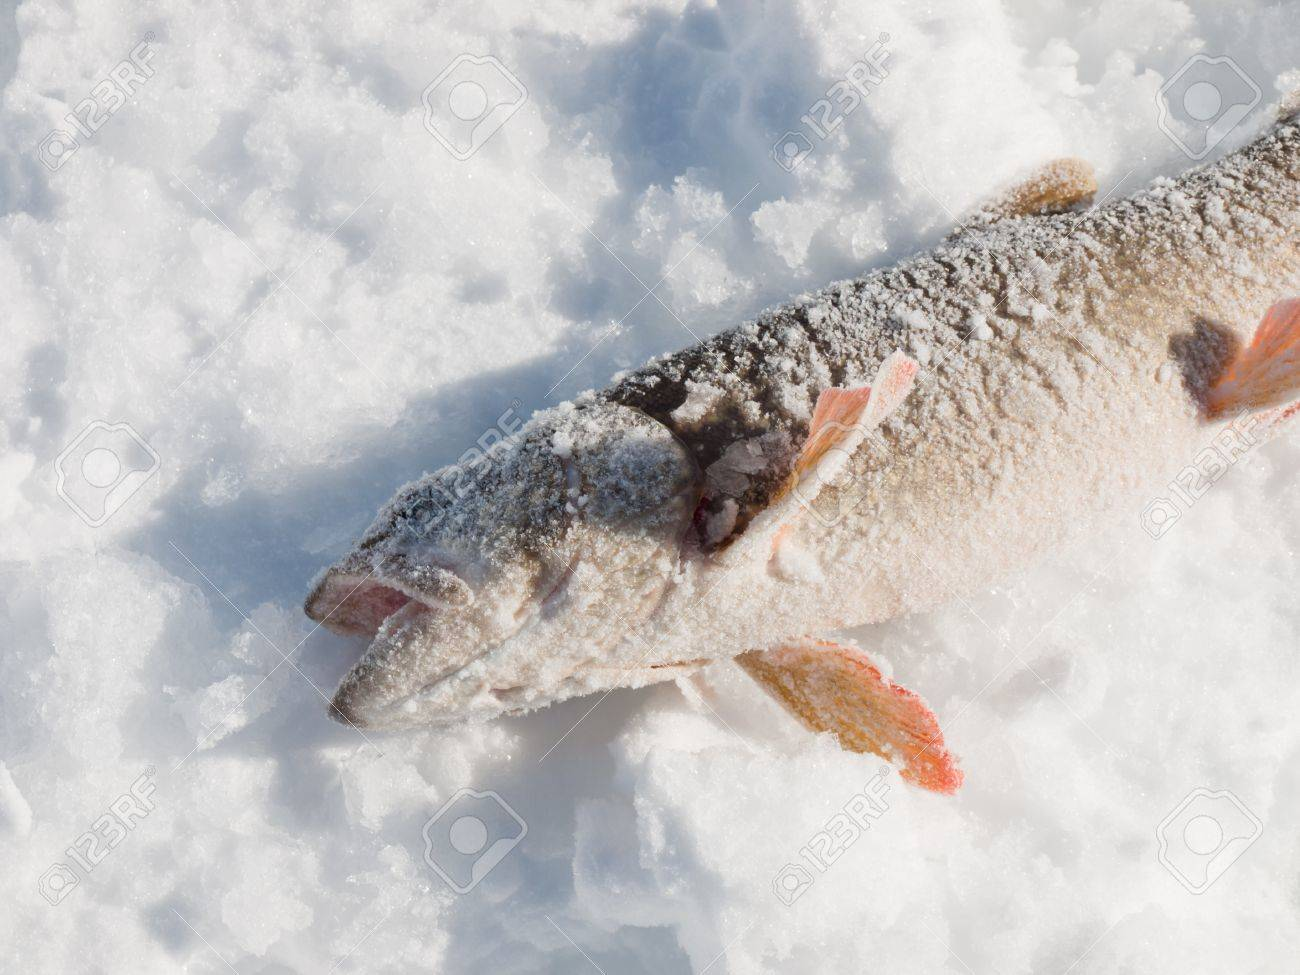 Freshly catched lake trout at Lake Granby, Colorado. Stock Photo - 8919171